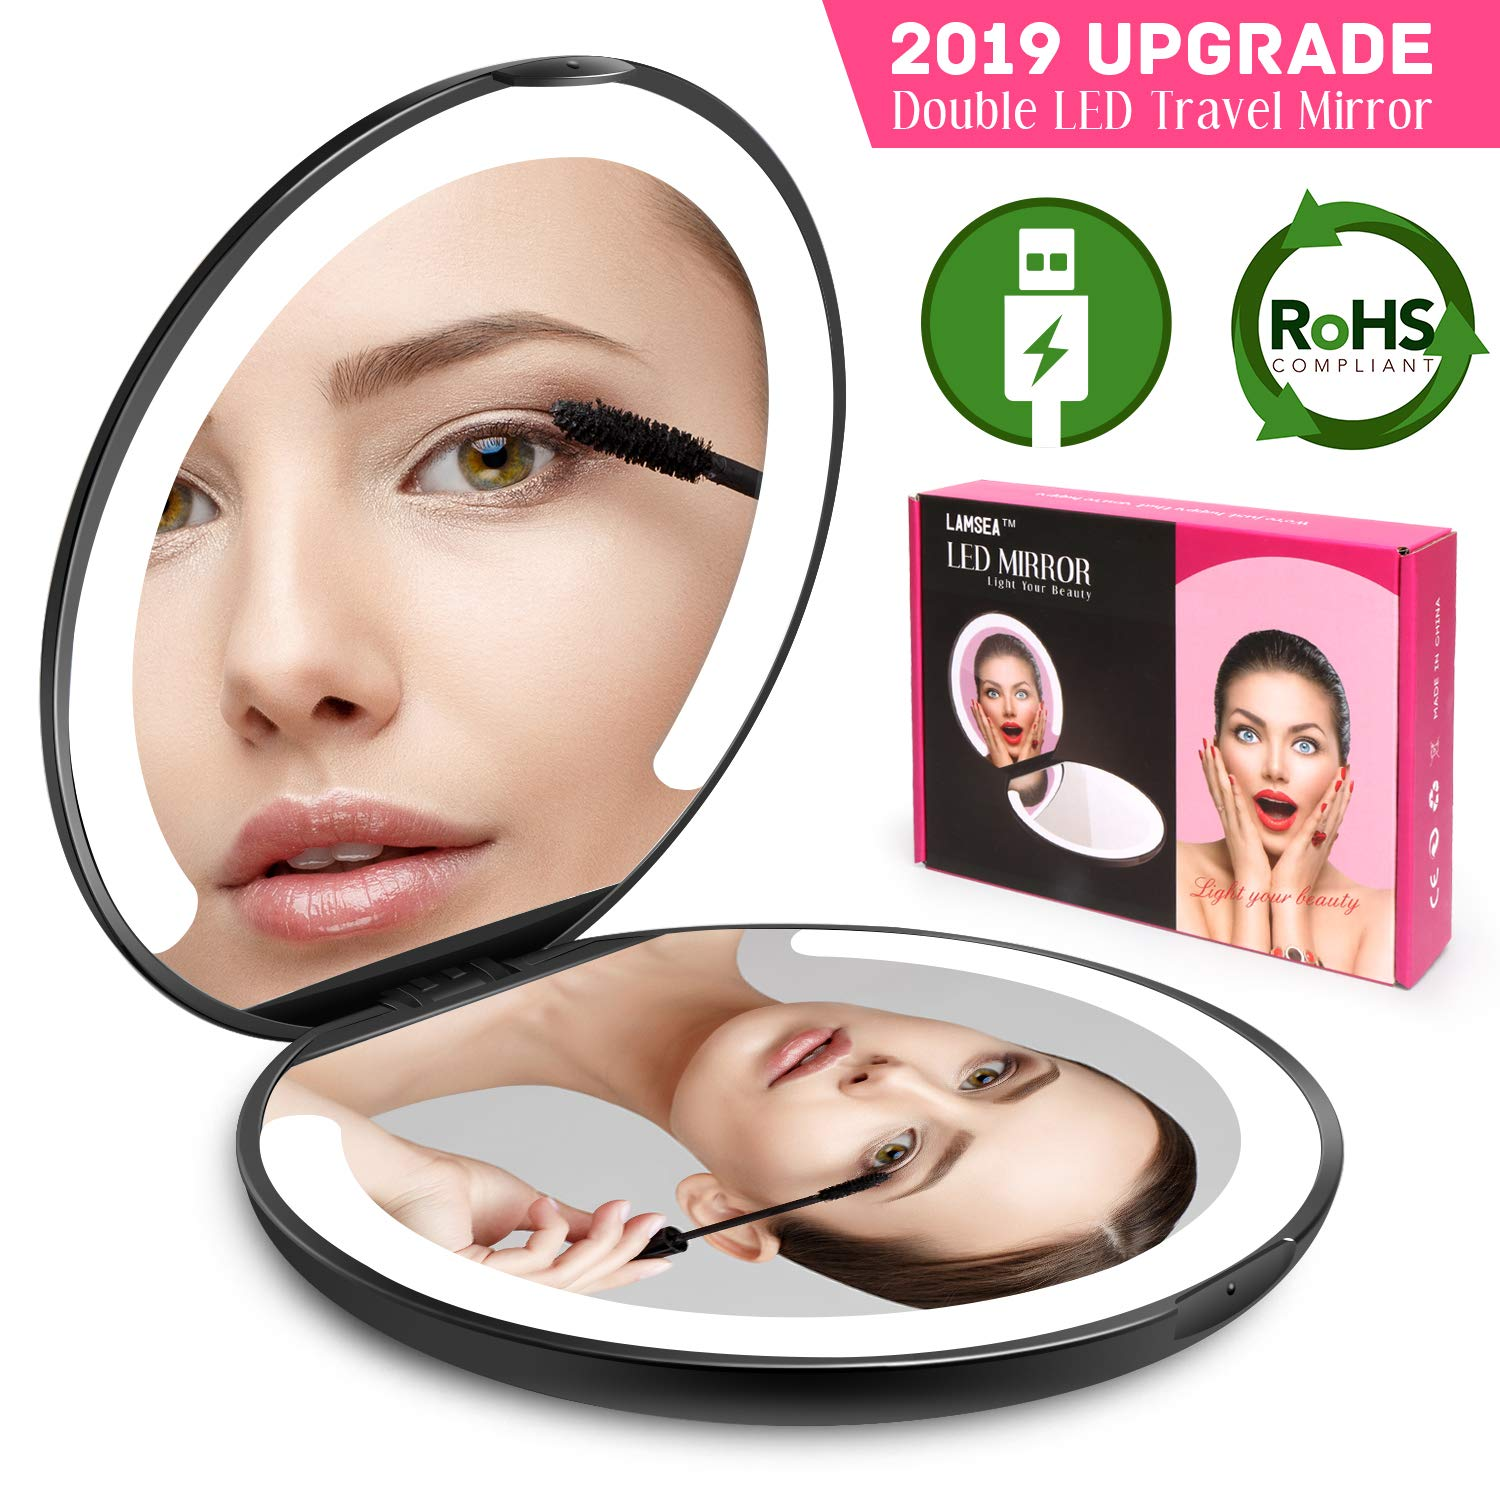 LED Lighted Travel Makeup Mirror Foldable, Dual Sided Vanity Mirror with Lights Portable Compact Illuminated Folding Tabletop Cosmetic Mirror, 1x/5x Magnifying Handheld Pocket Mirrors(2019 Upgrade)